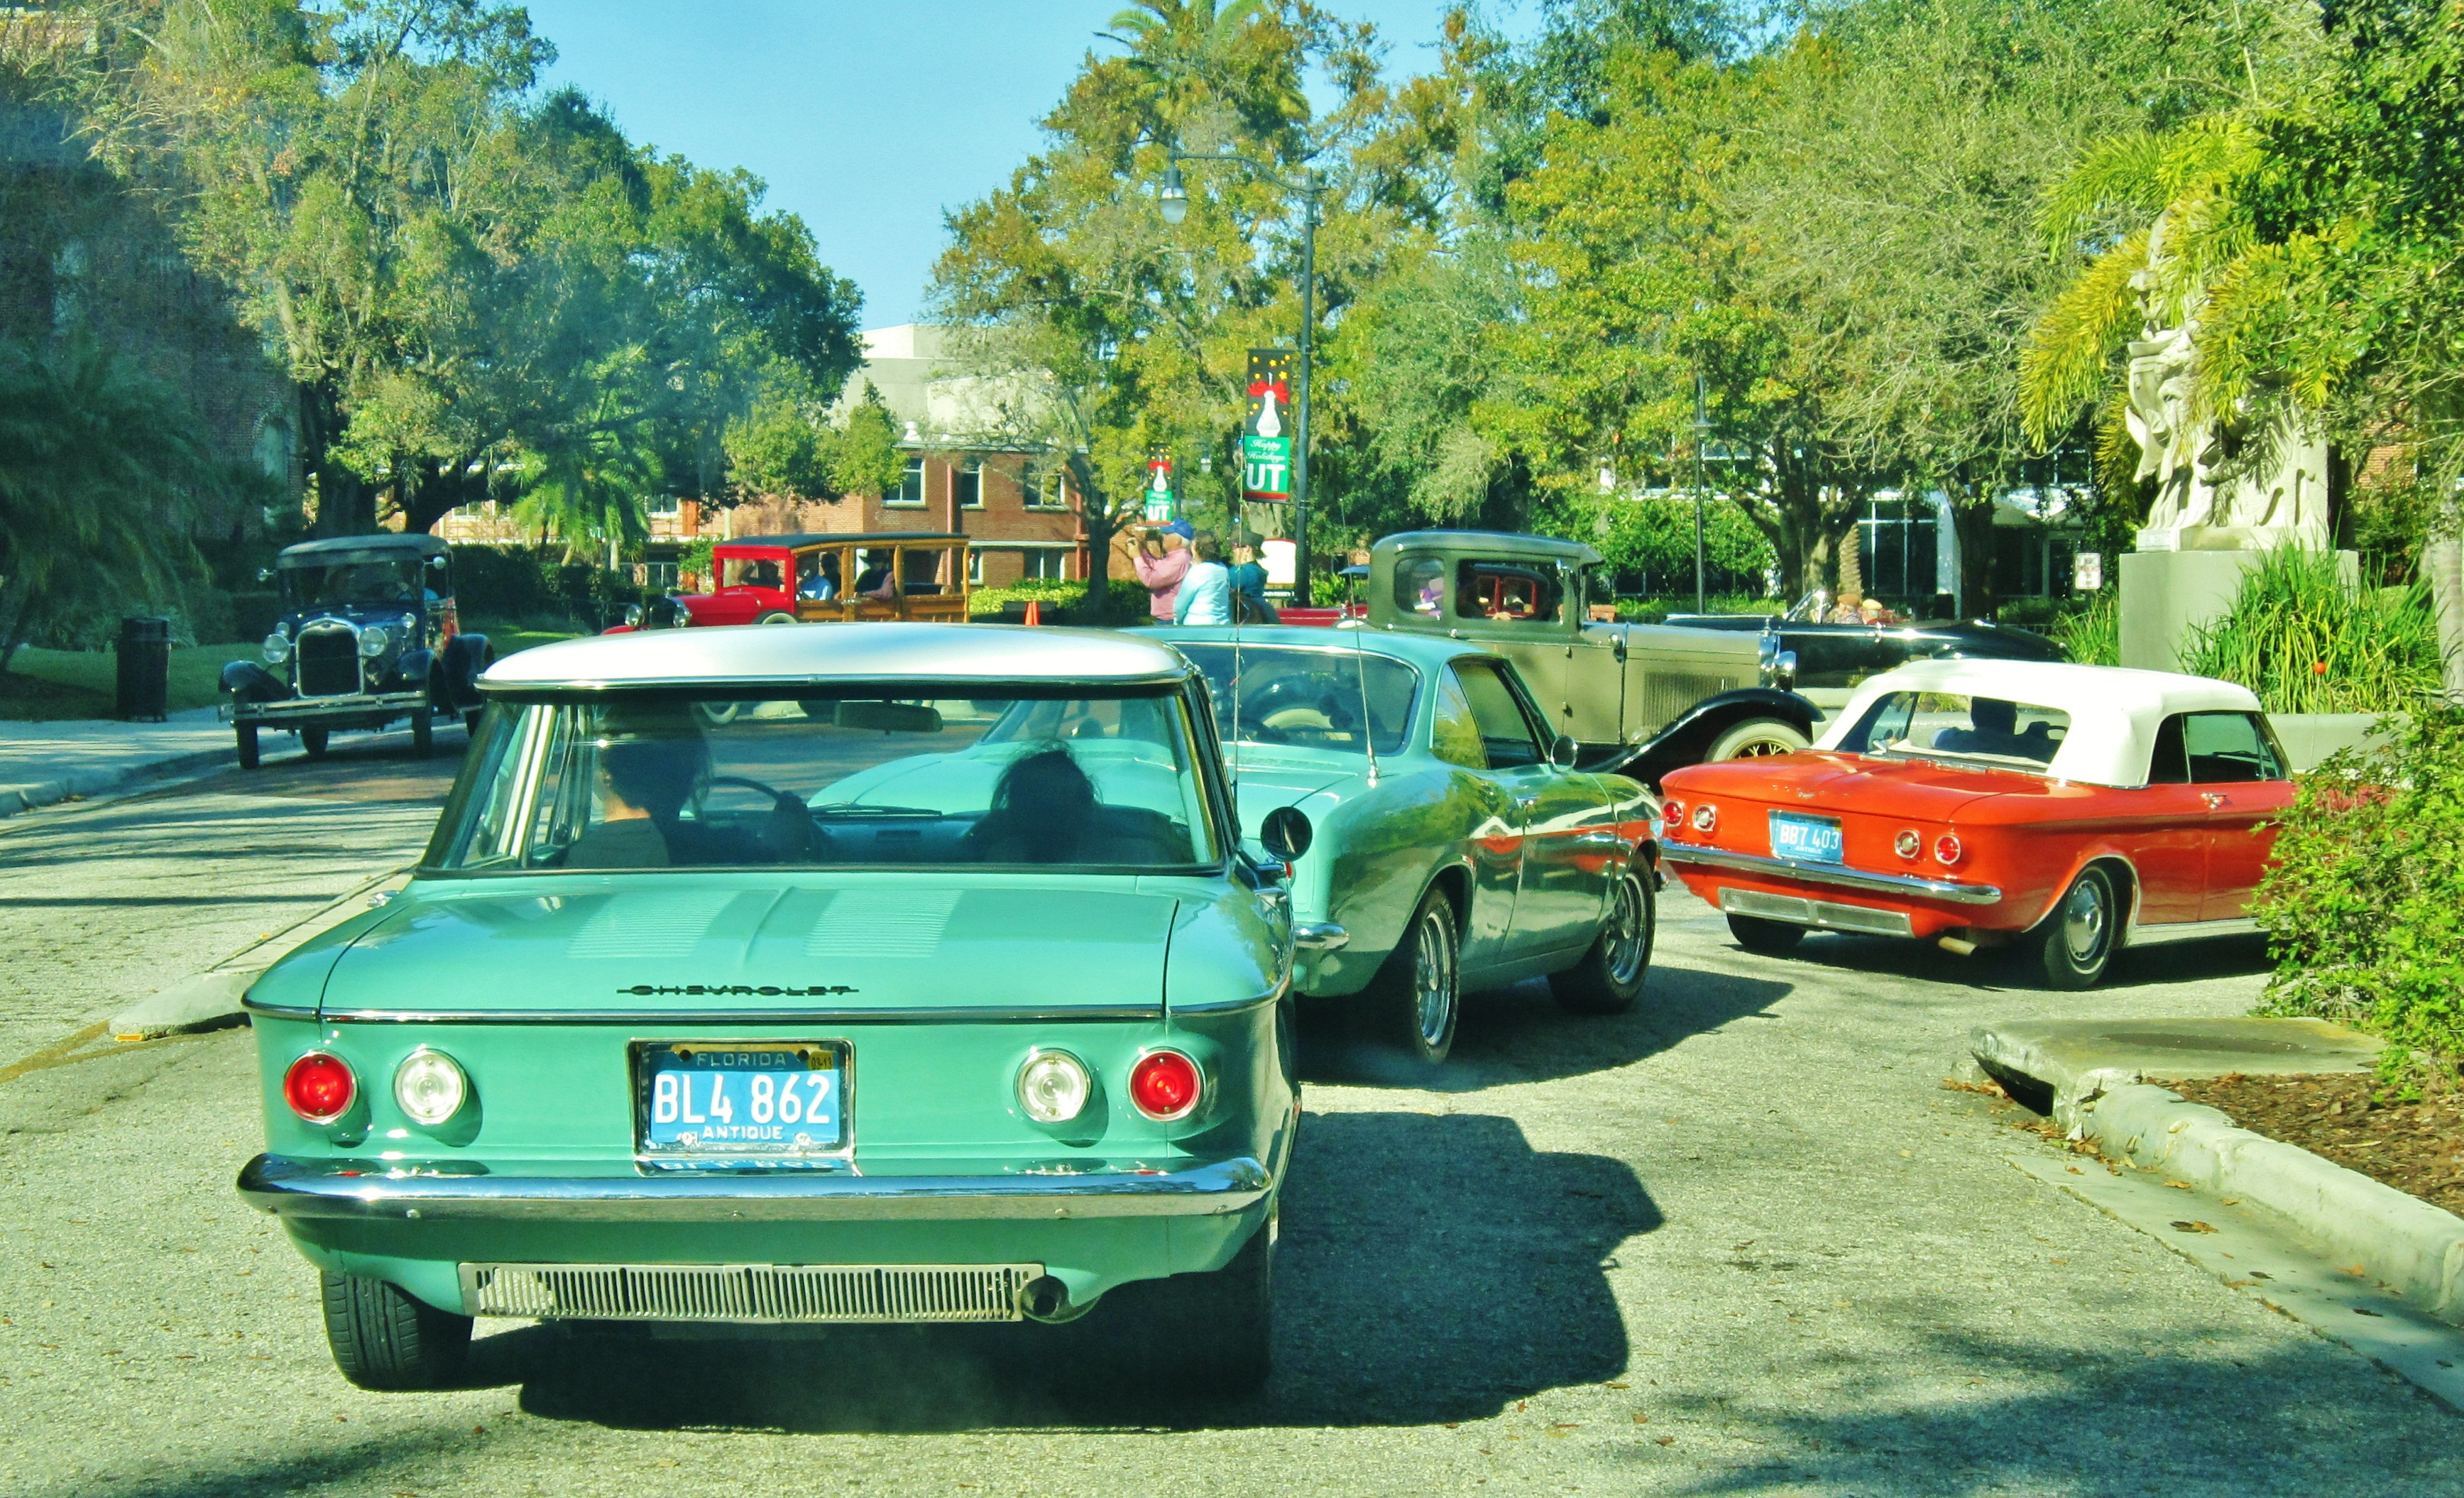 File:Parade of vintage cars in front of the university in